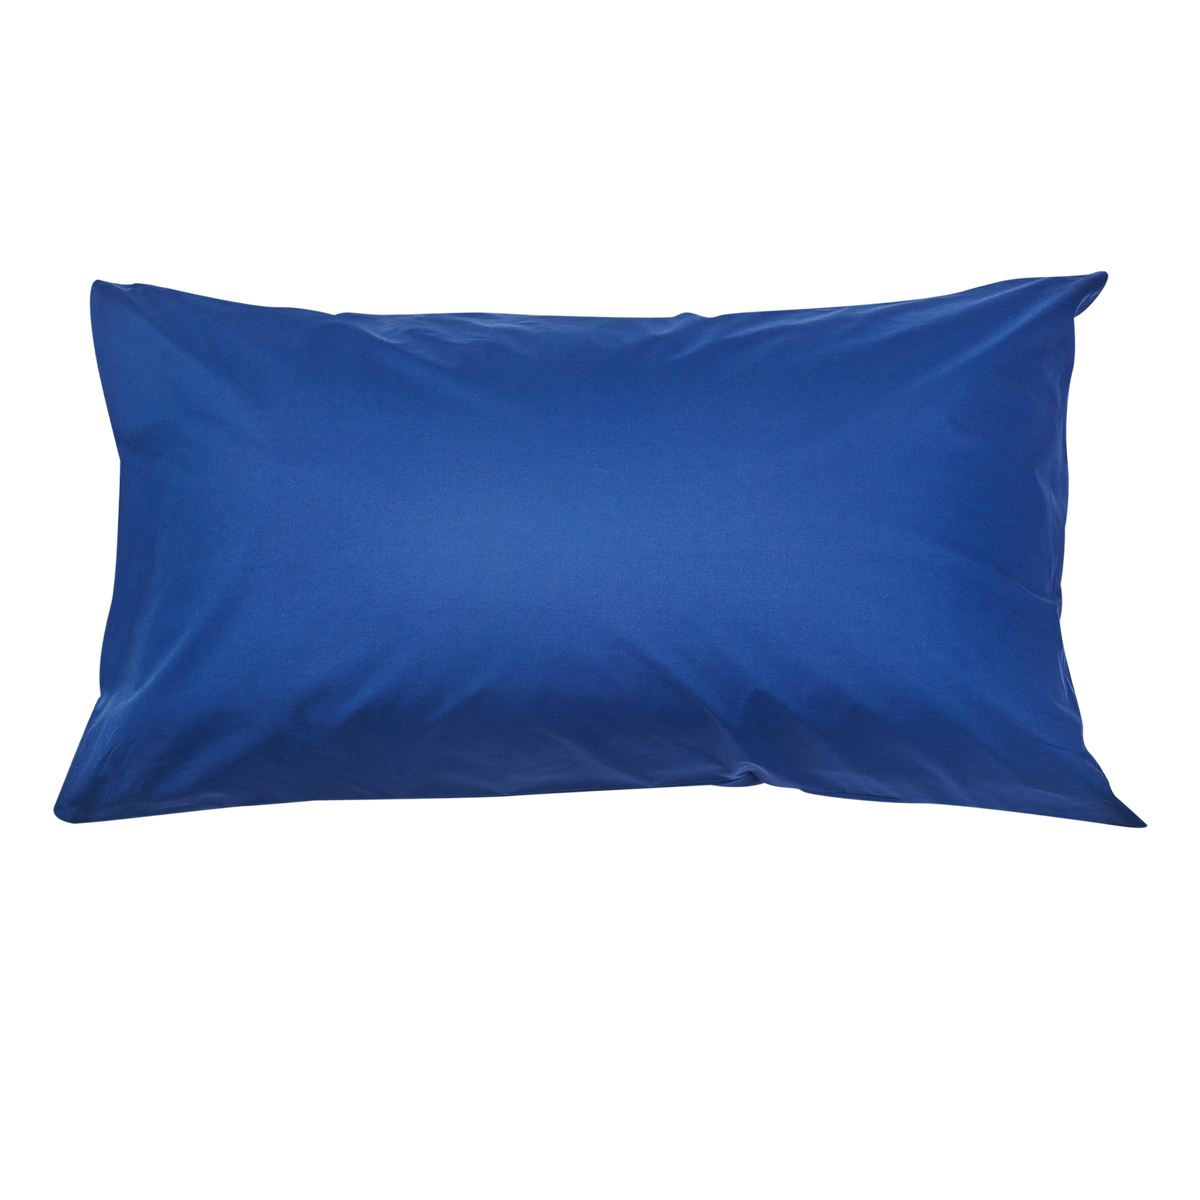 Refined Collection Sateen Pillowcases in Navy | Skylark+Owl Linen Co.